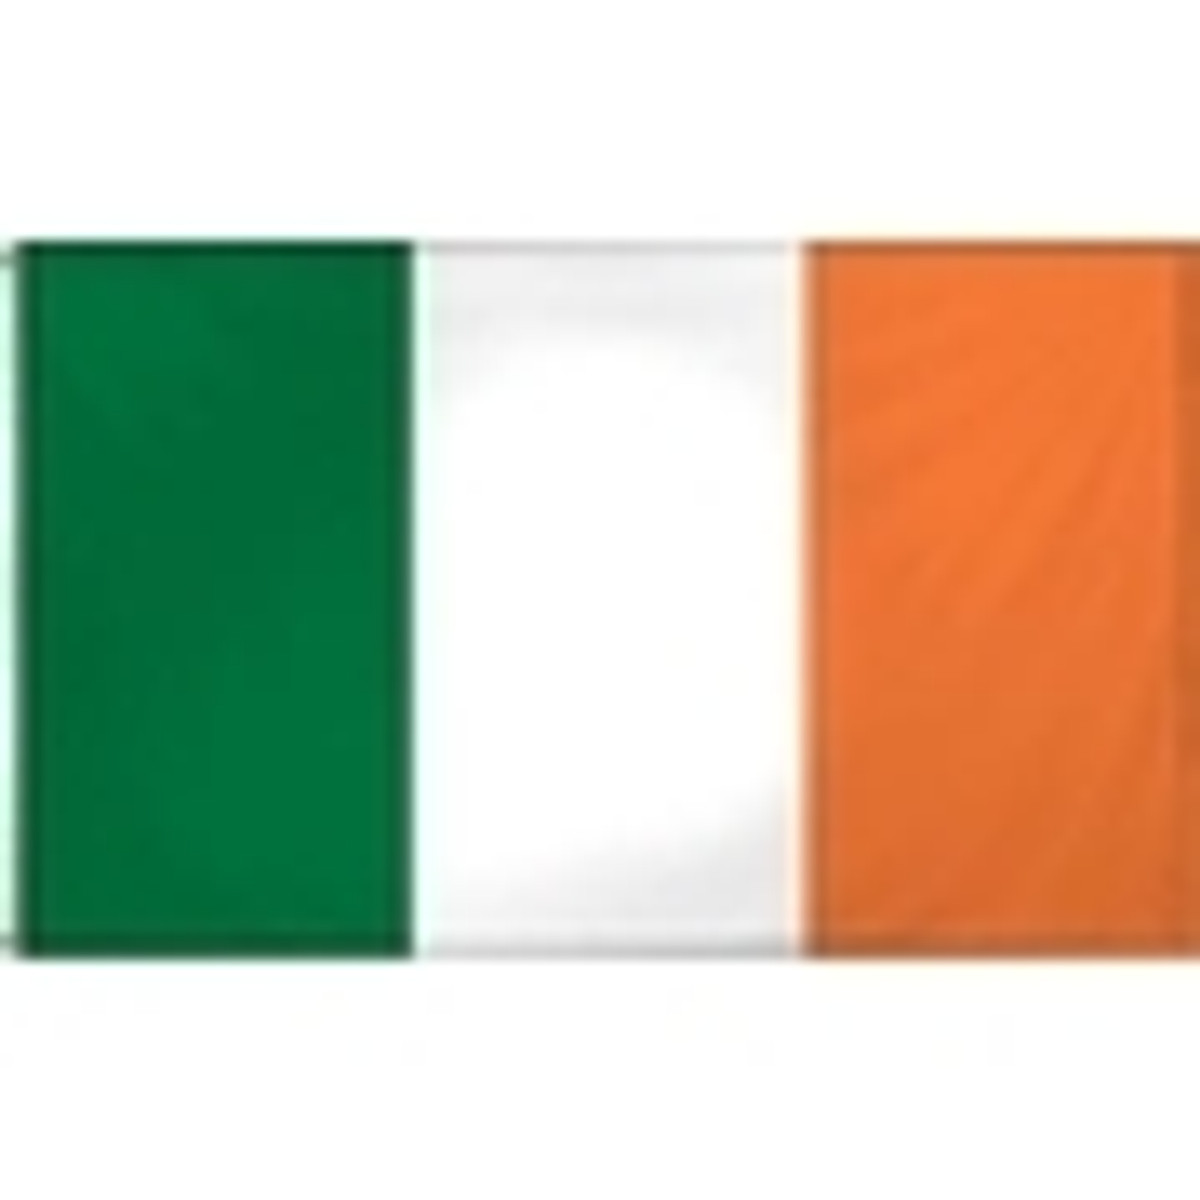 Irish Flag pins, patches and decals